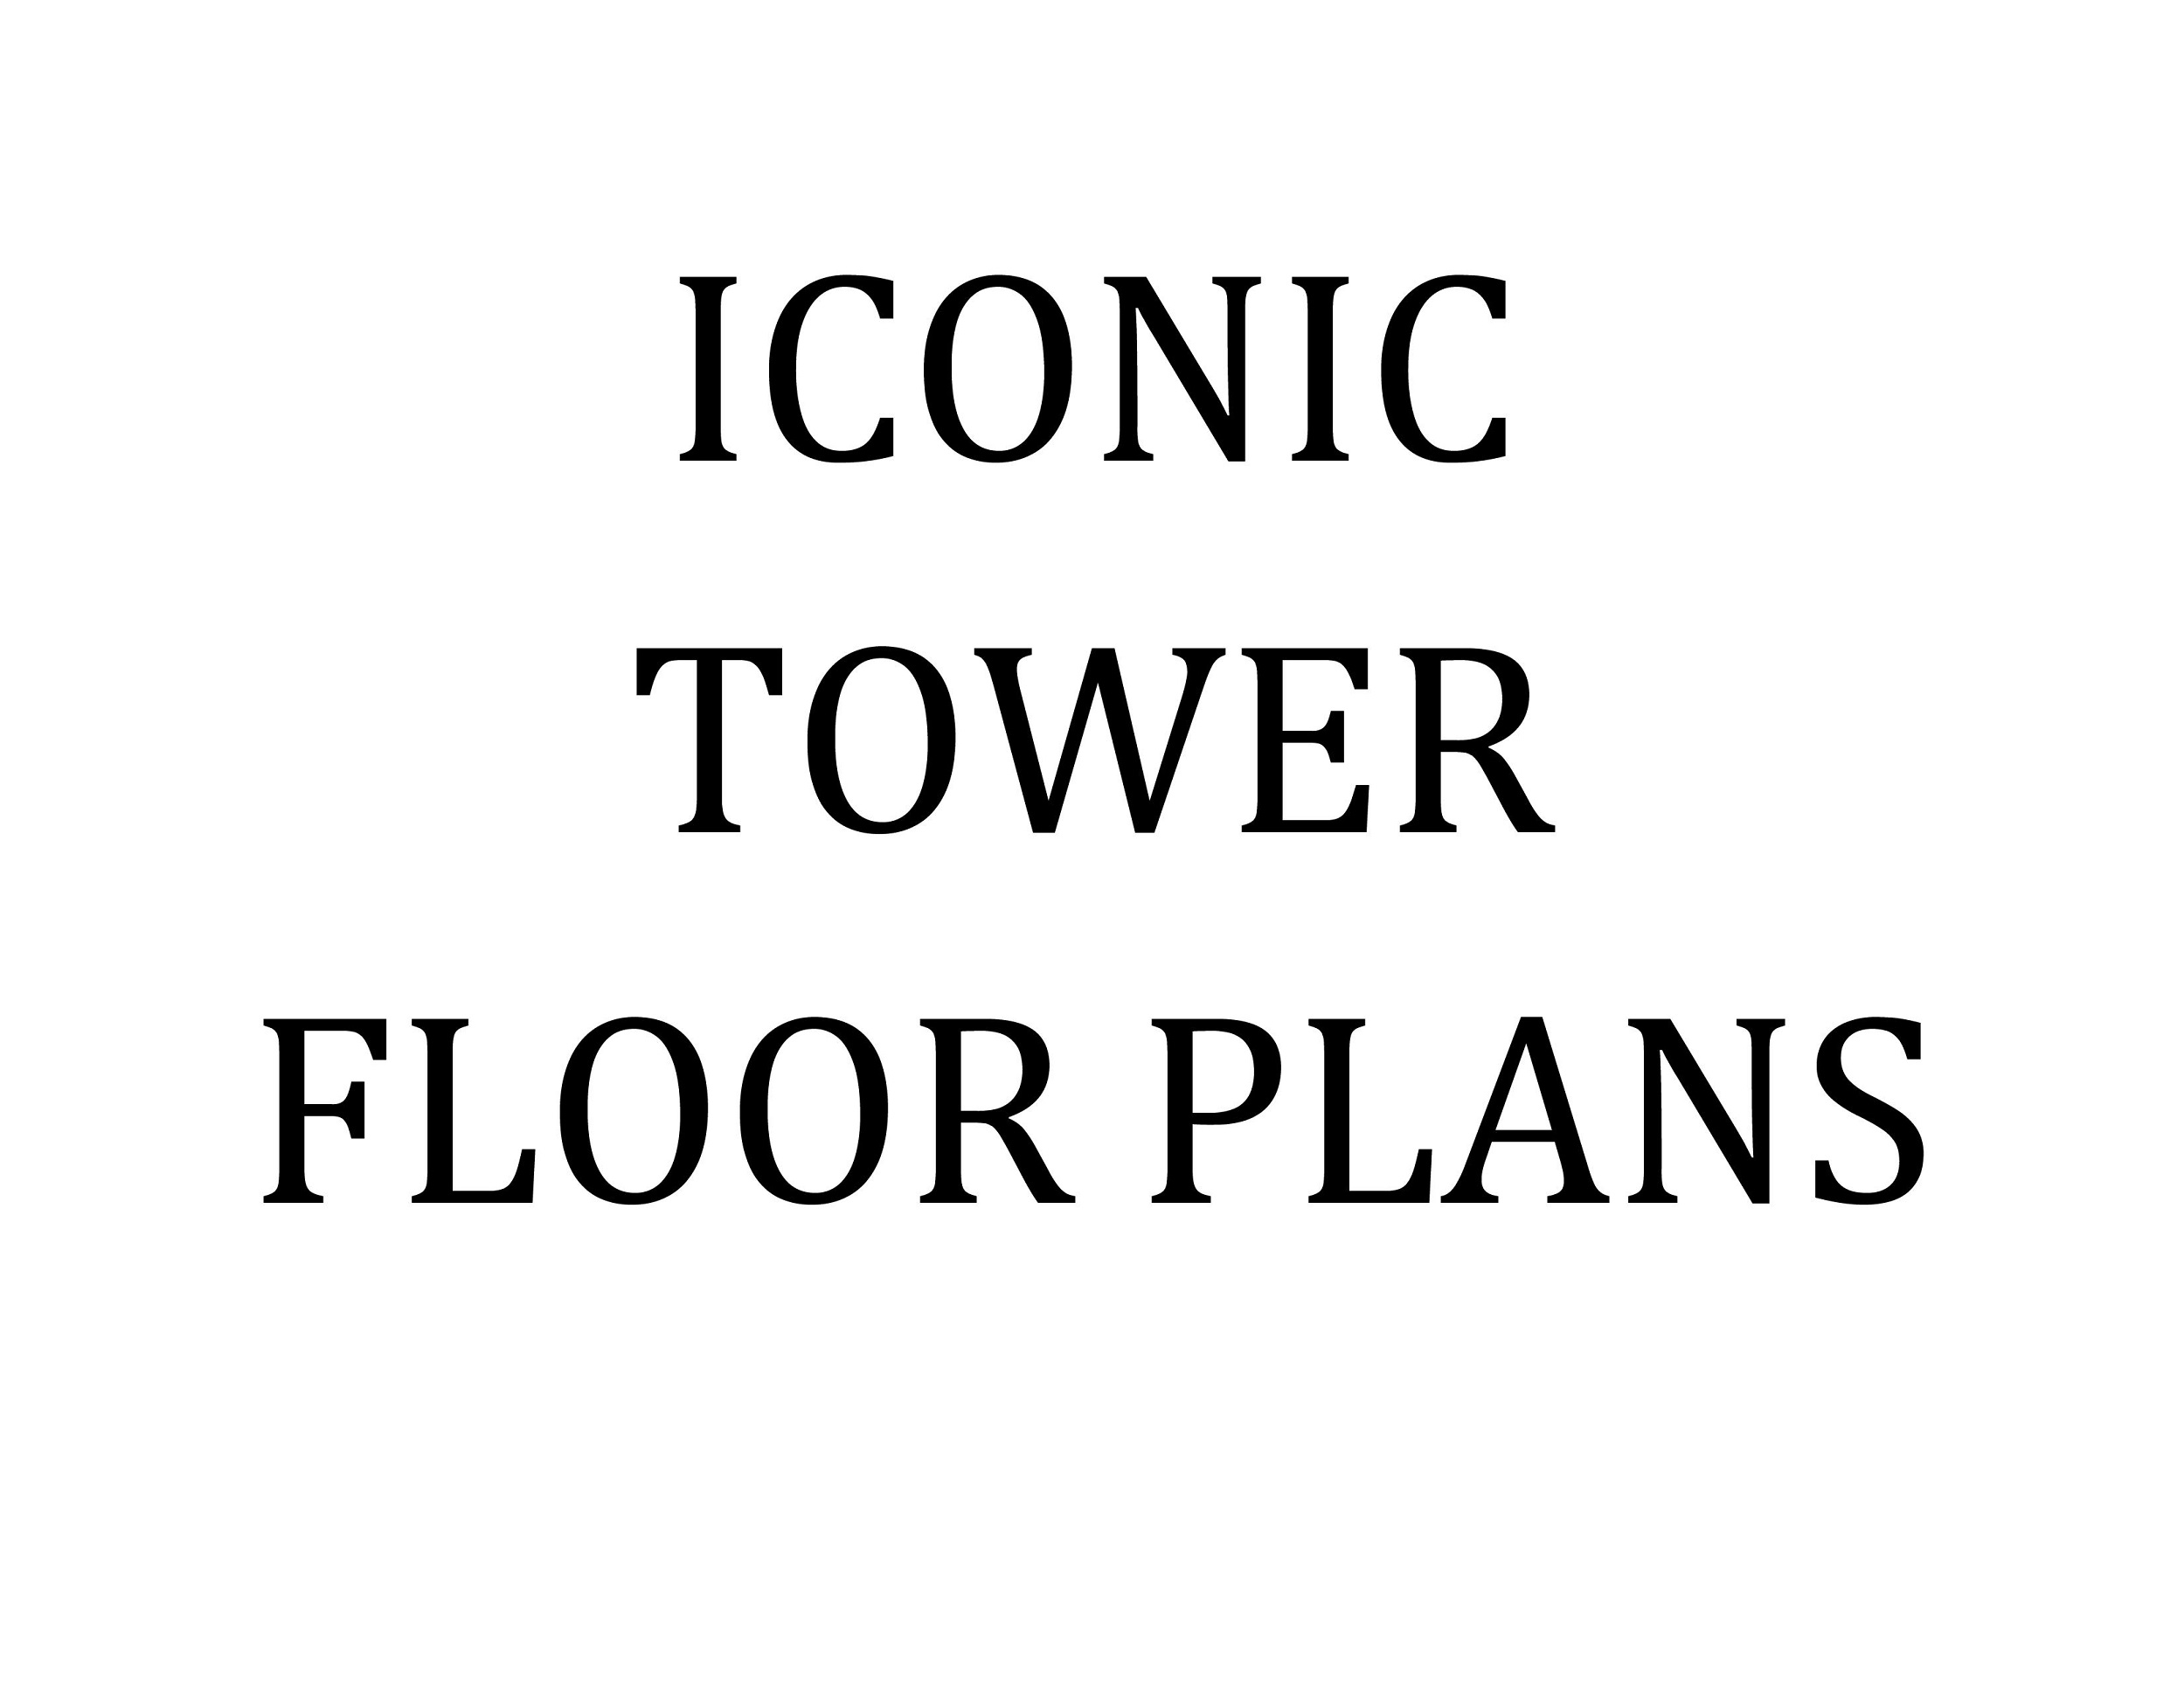 Iconic Tower Floor Plans